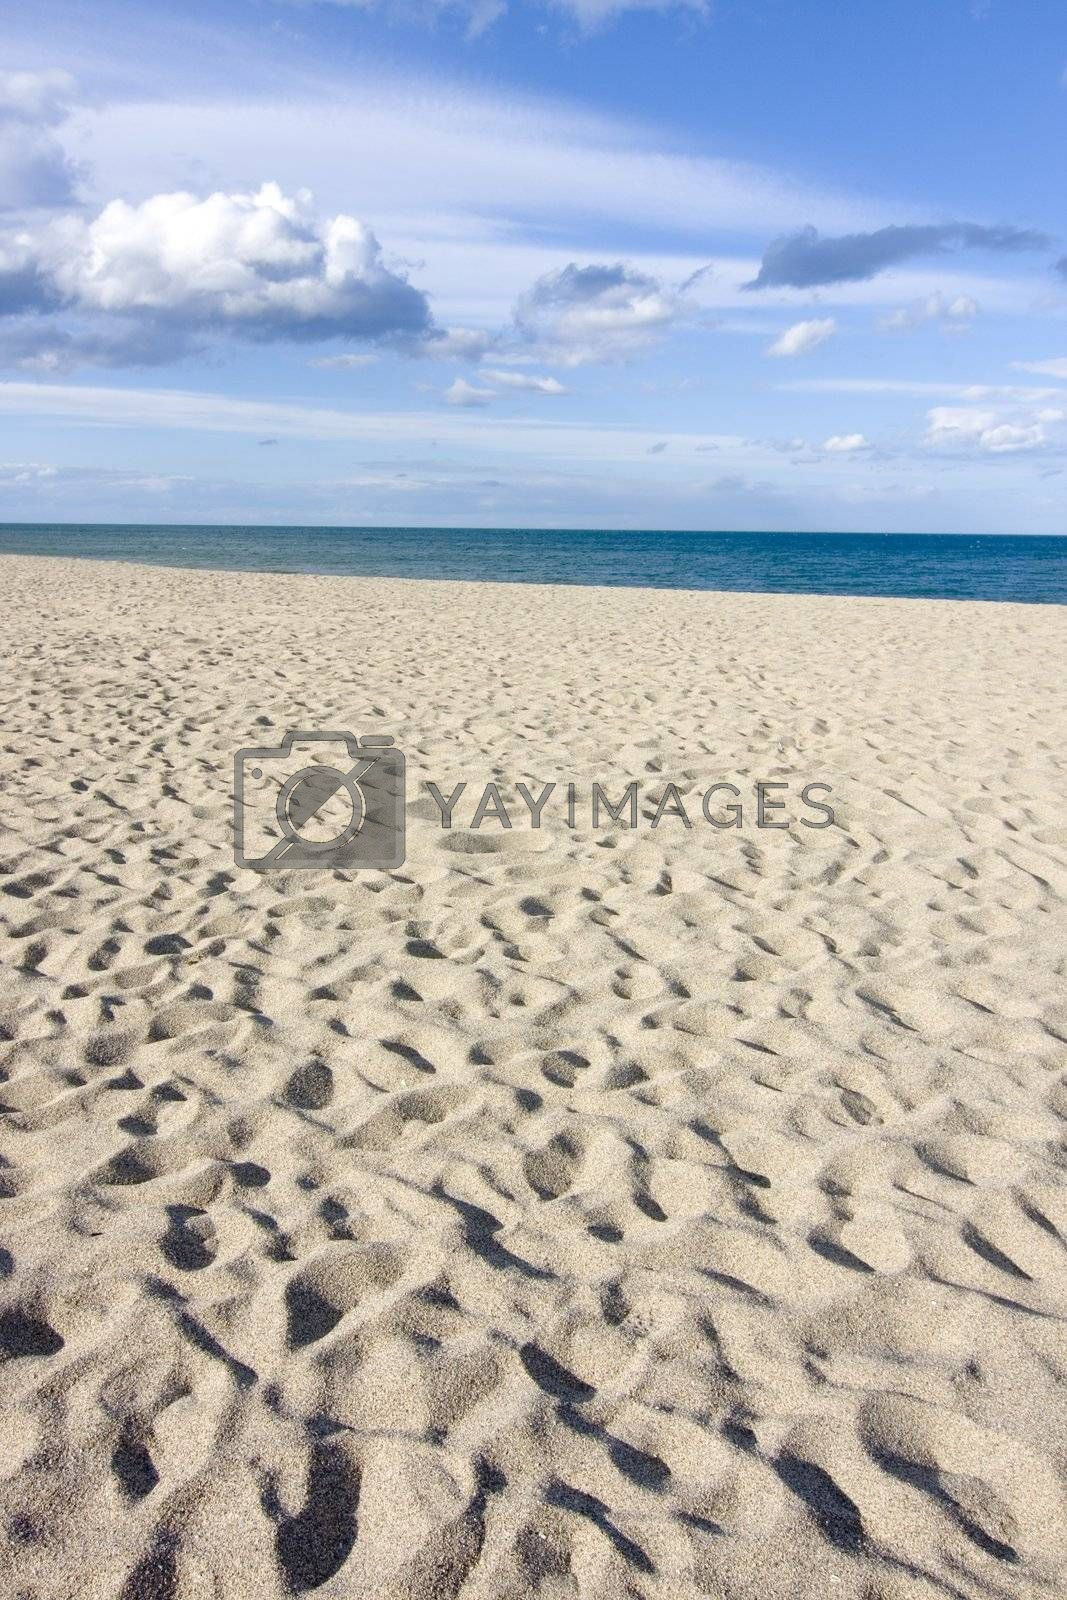 Cloudy sky above a sandy beach - Focus on the beach